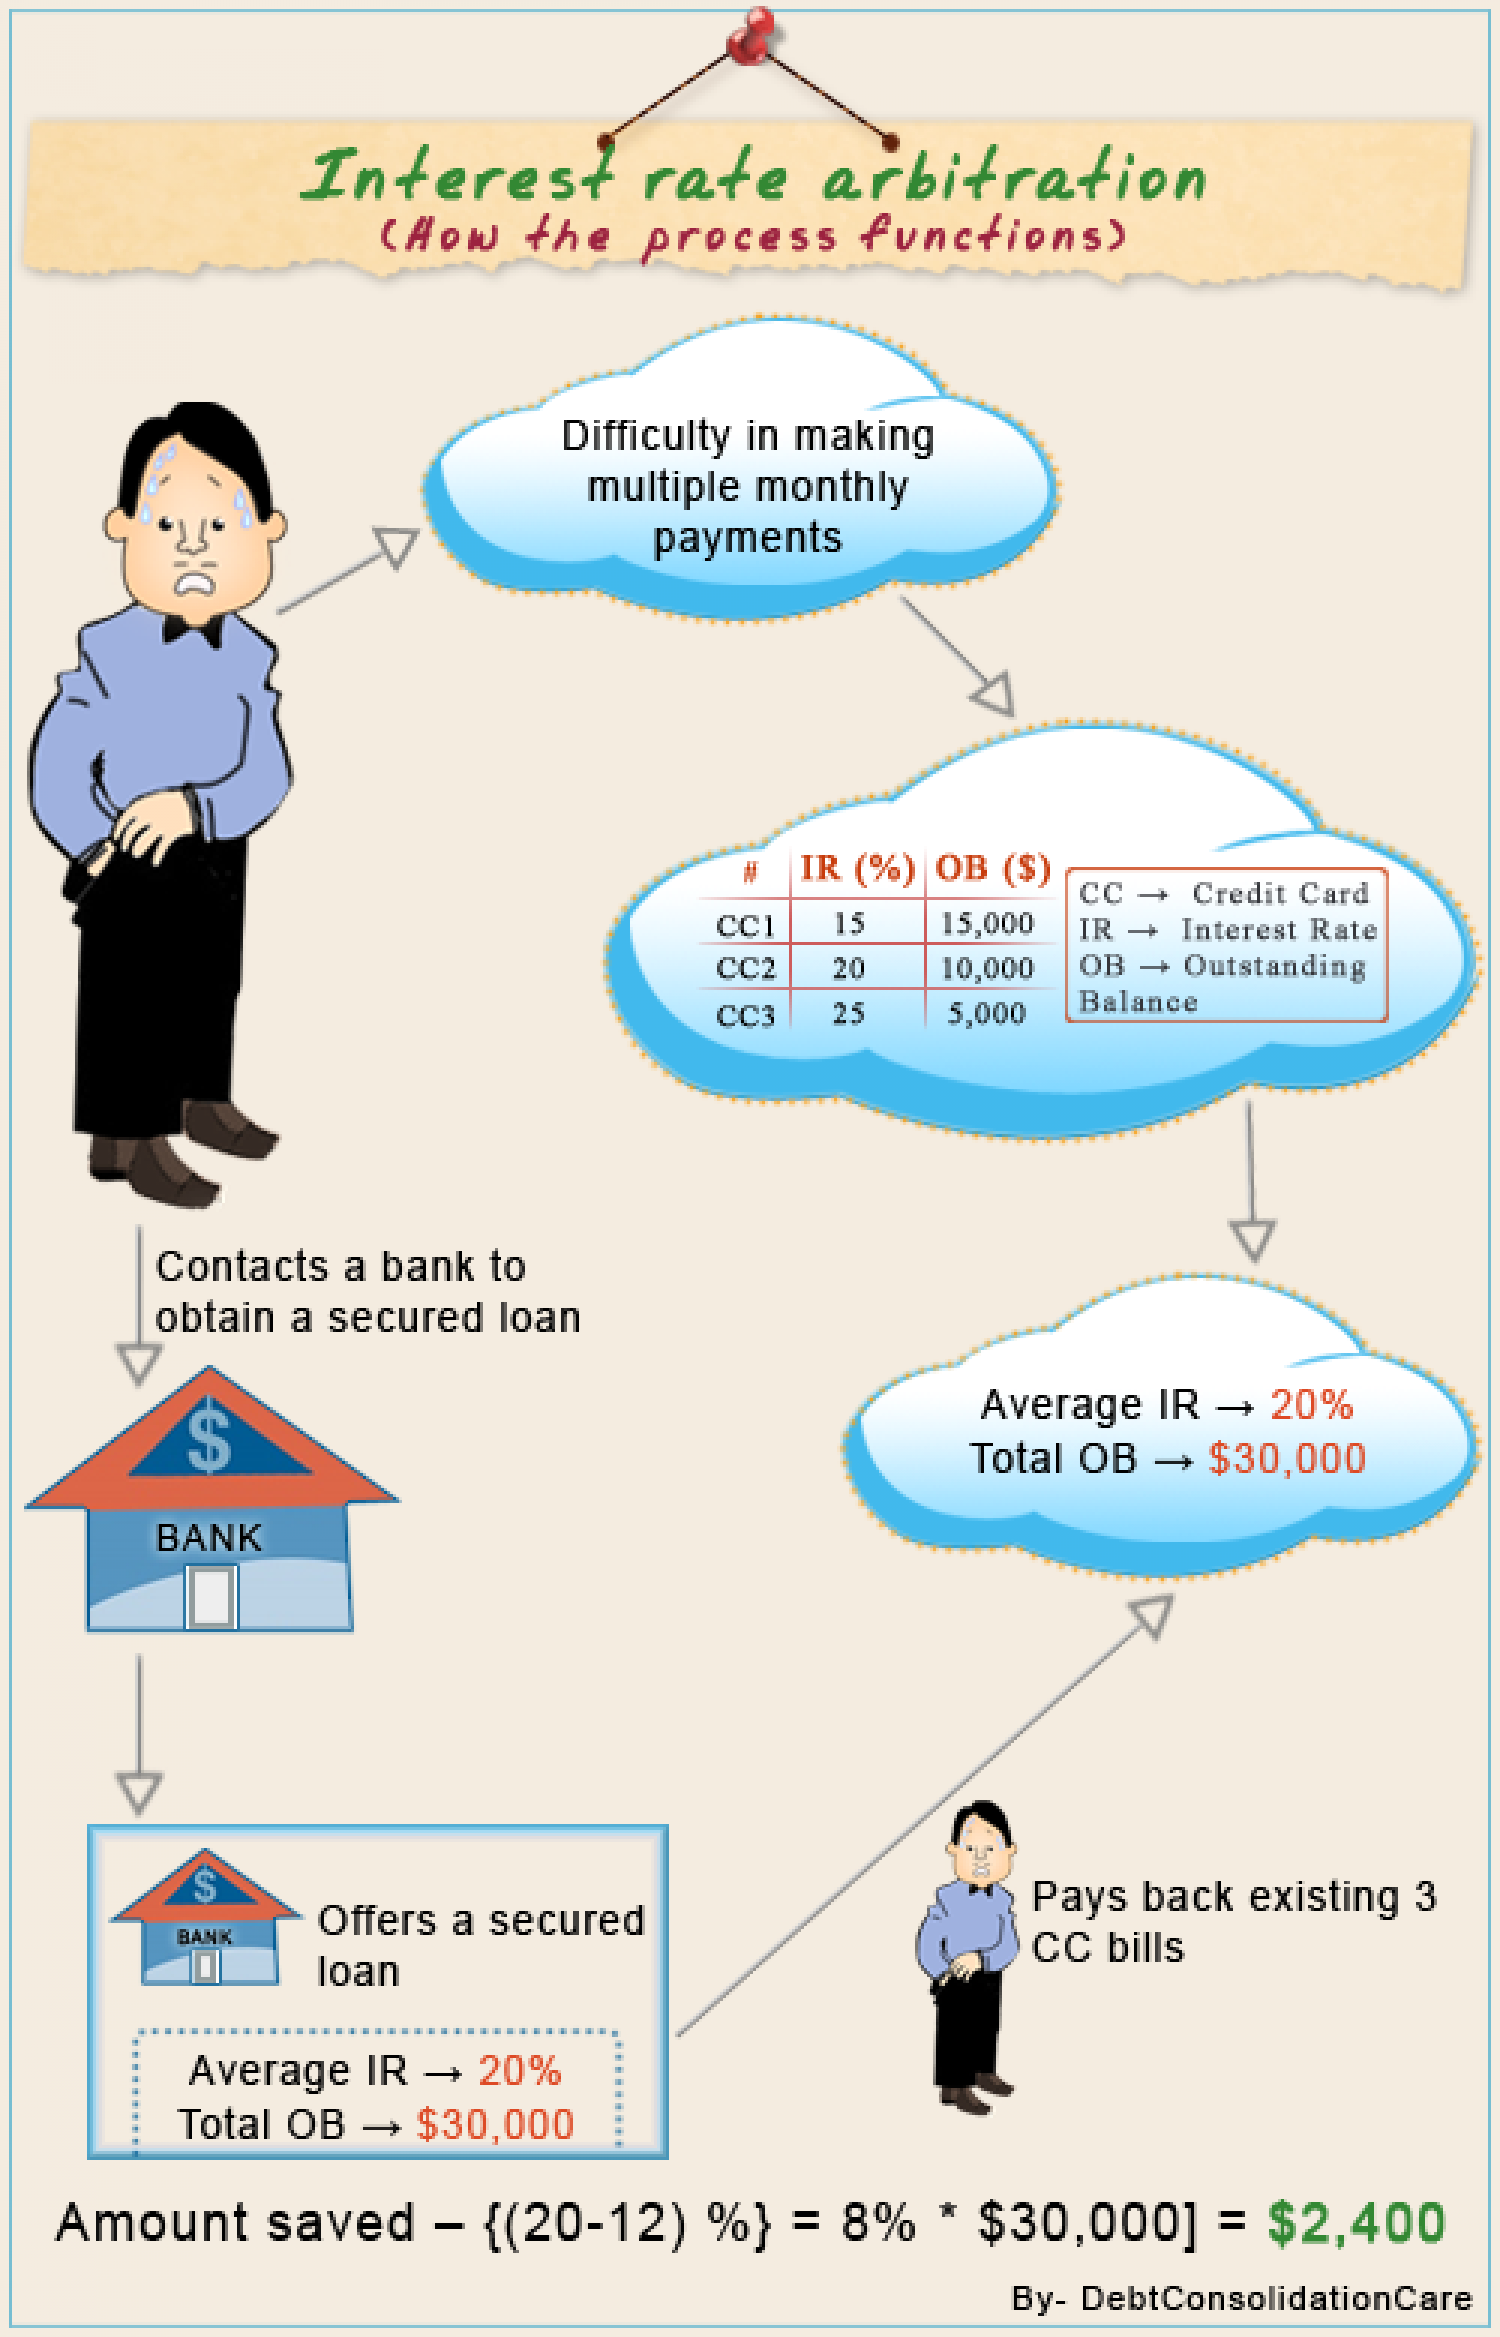 Interest rate arbitration infographic - Know how the process works Infographic